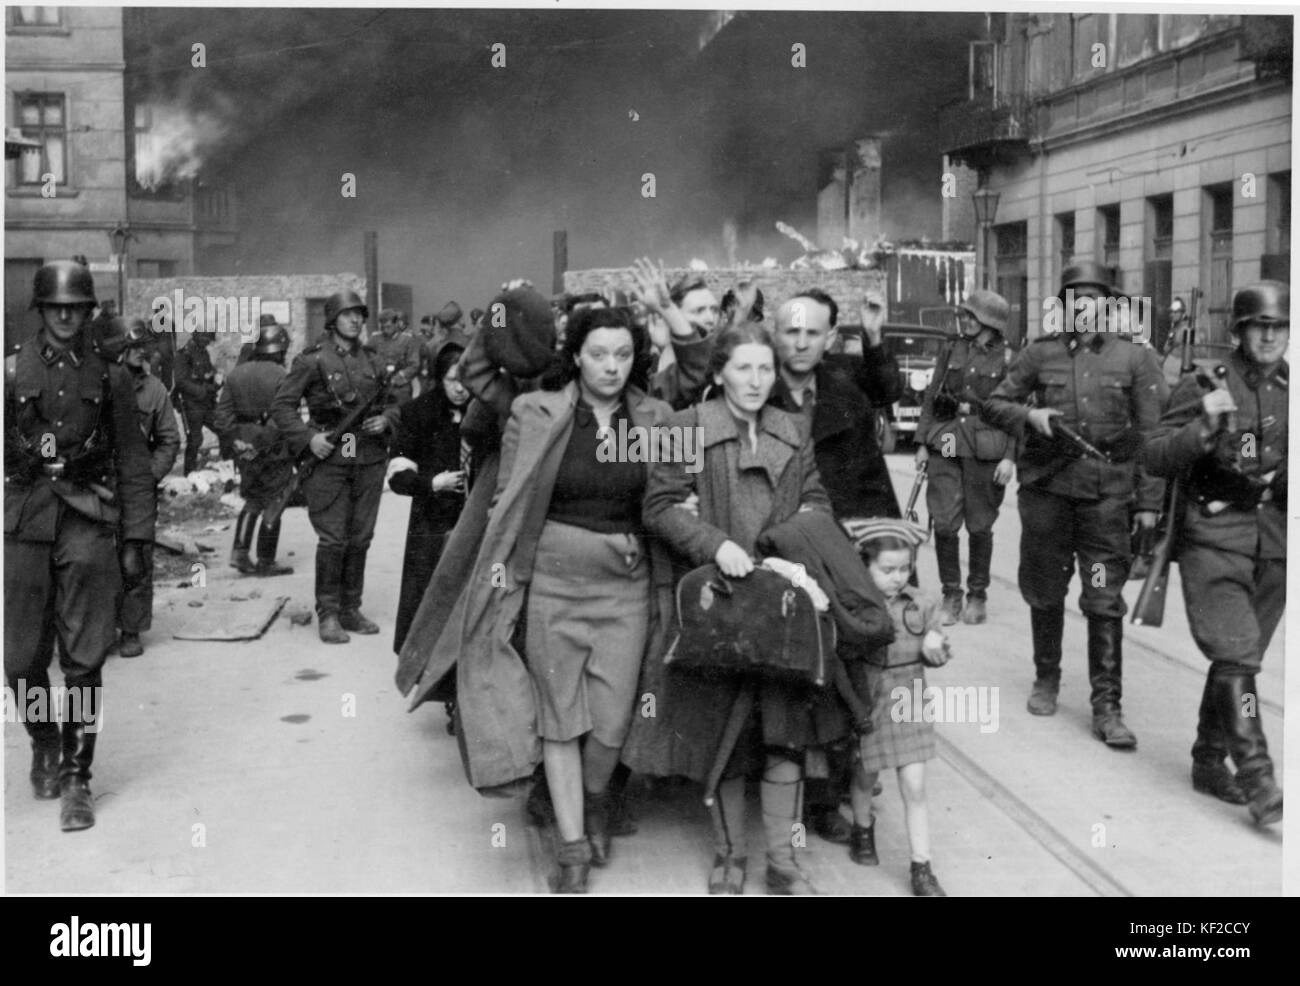 Stroop Report Warsaw Ghetto Uprising 10 Stock Photo - Alamy